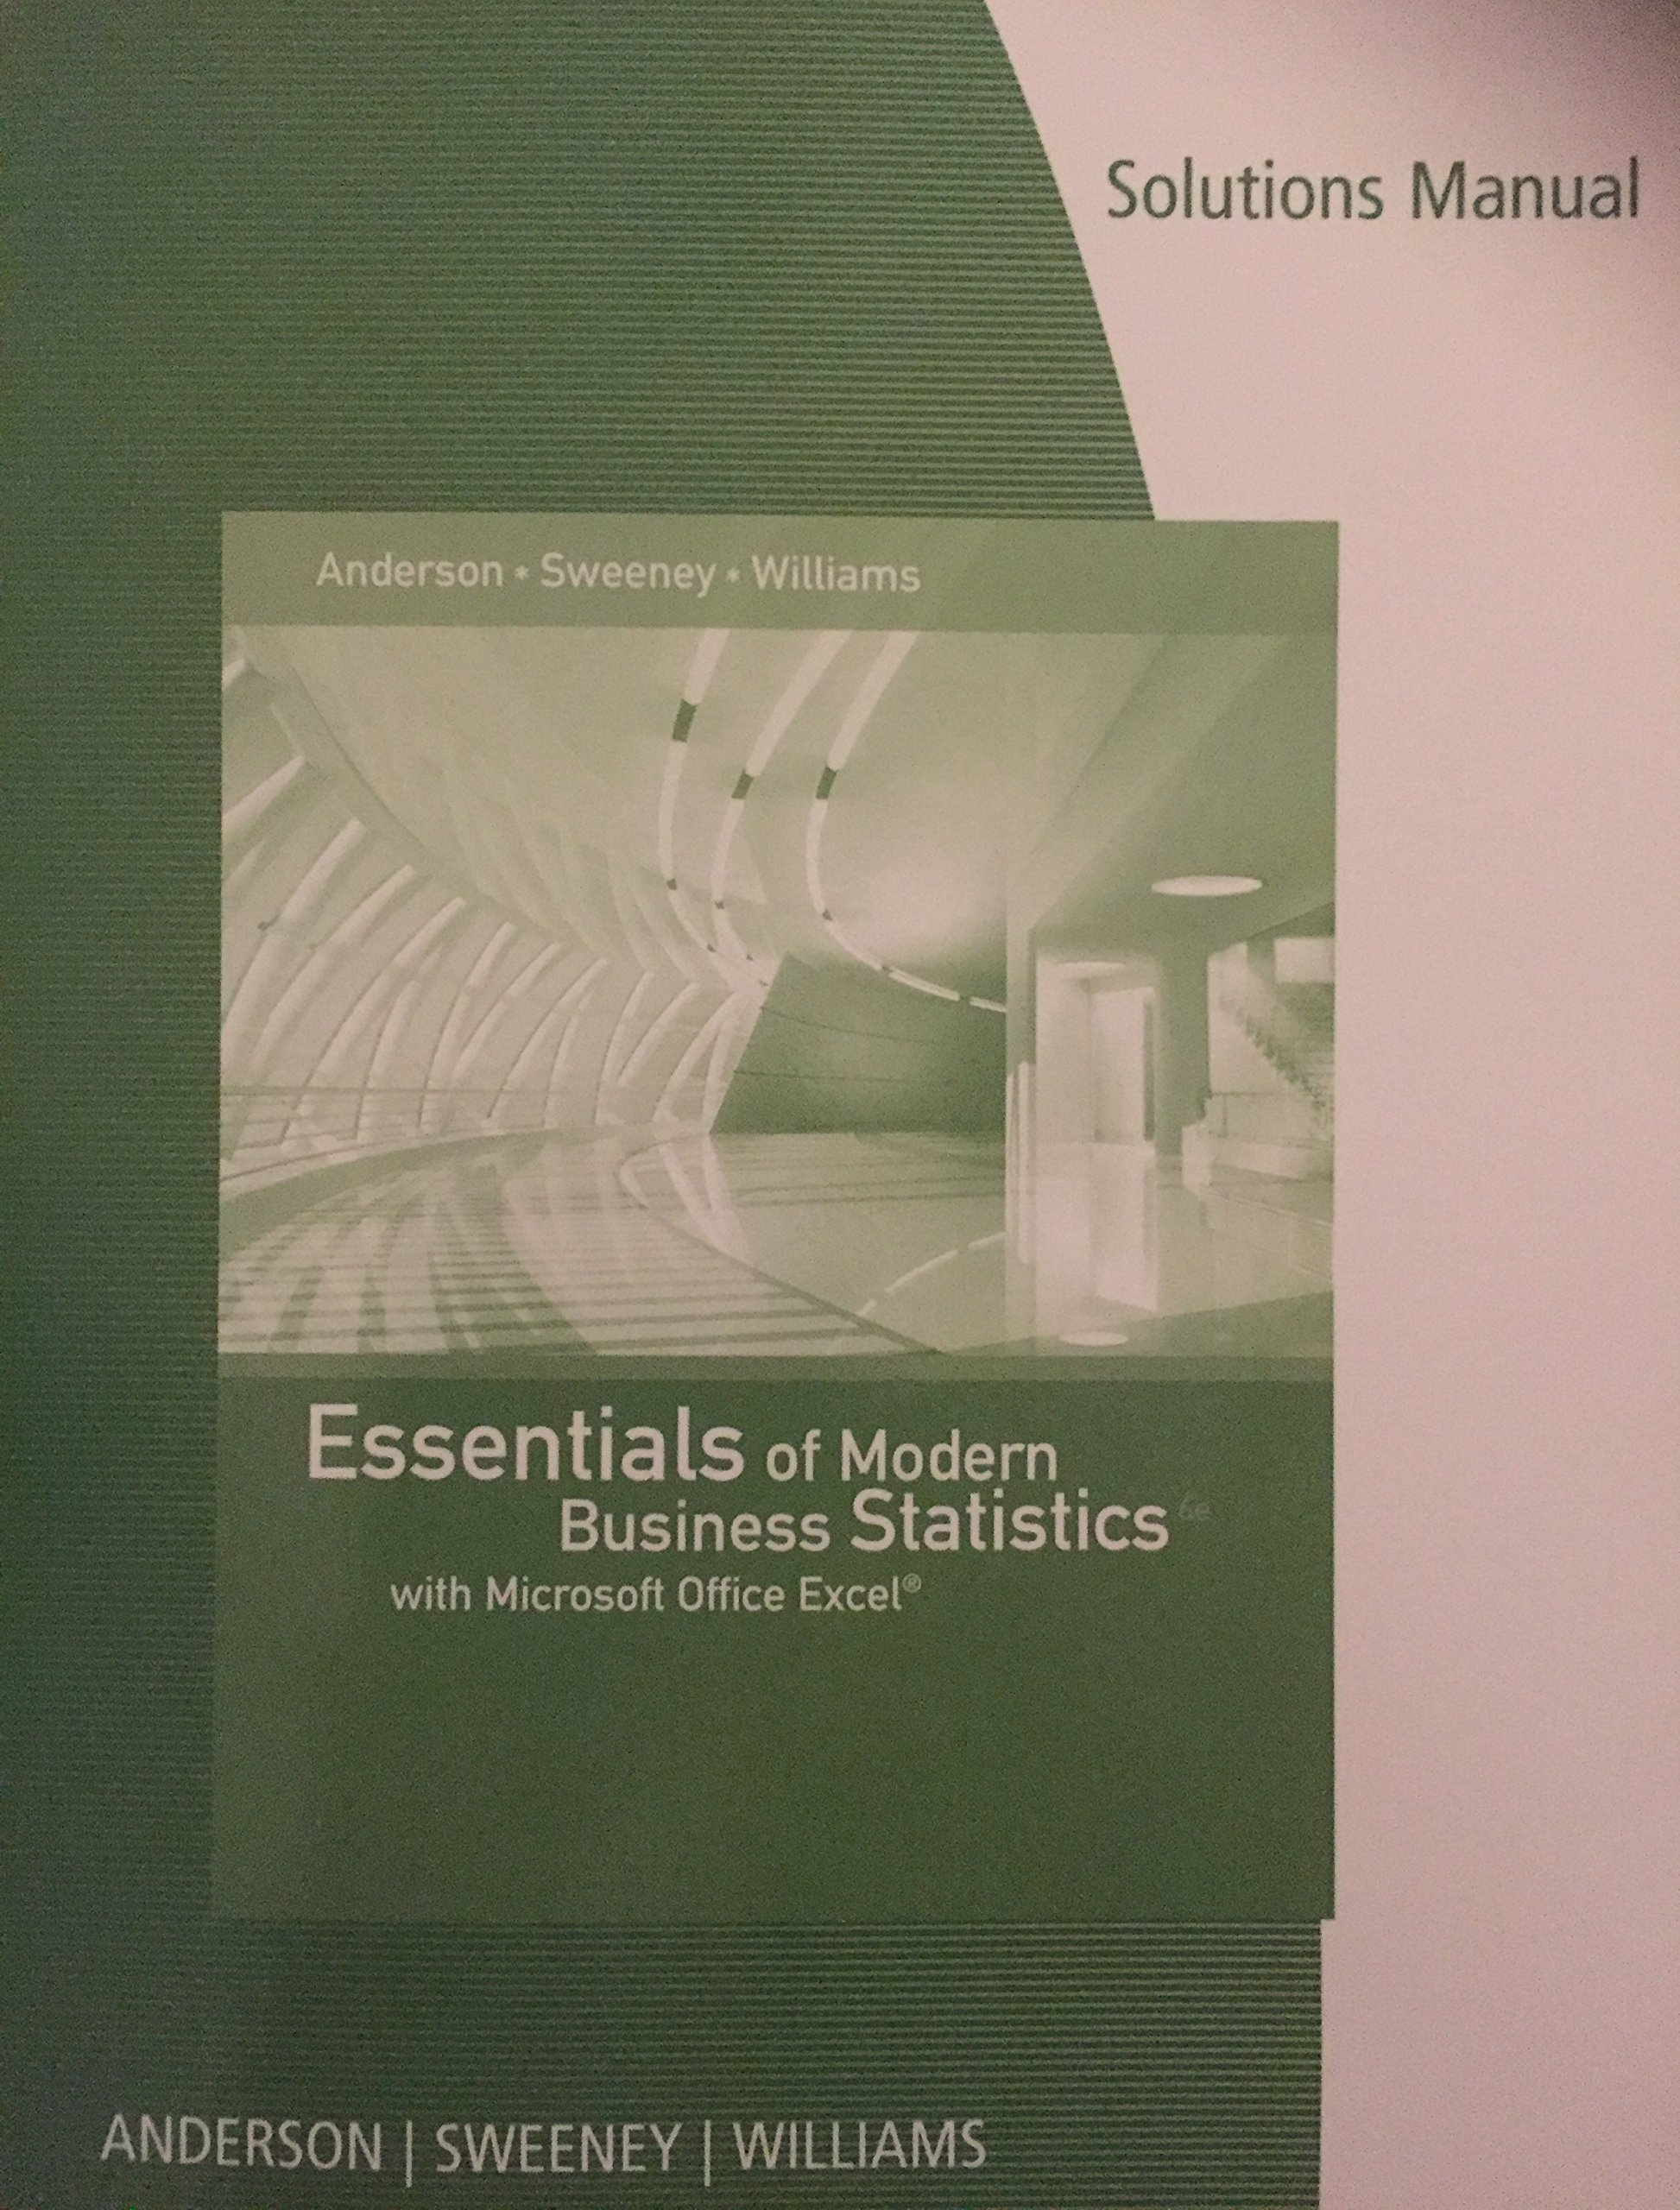 Essentials of Modern Business Statistics with Microsoft Office Excel Solutions  Manual 6th edition 9781305251106: Anderson, Sweeney, Williams: Amazon.com:  ...